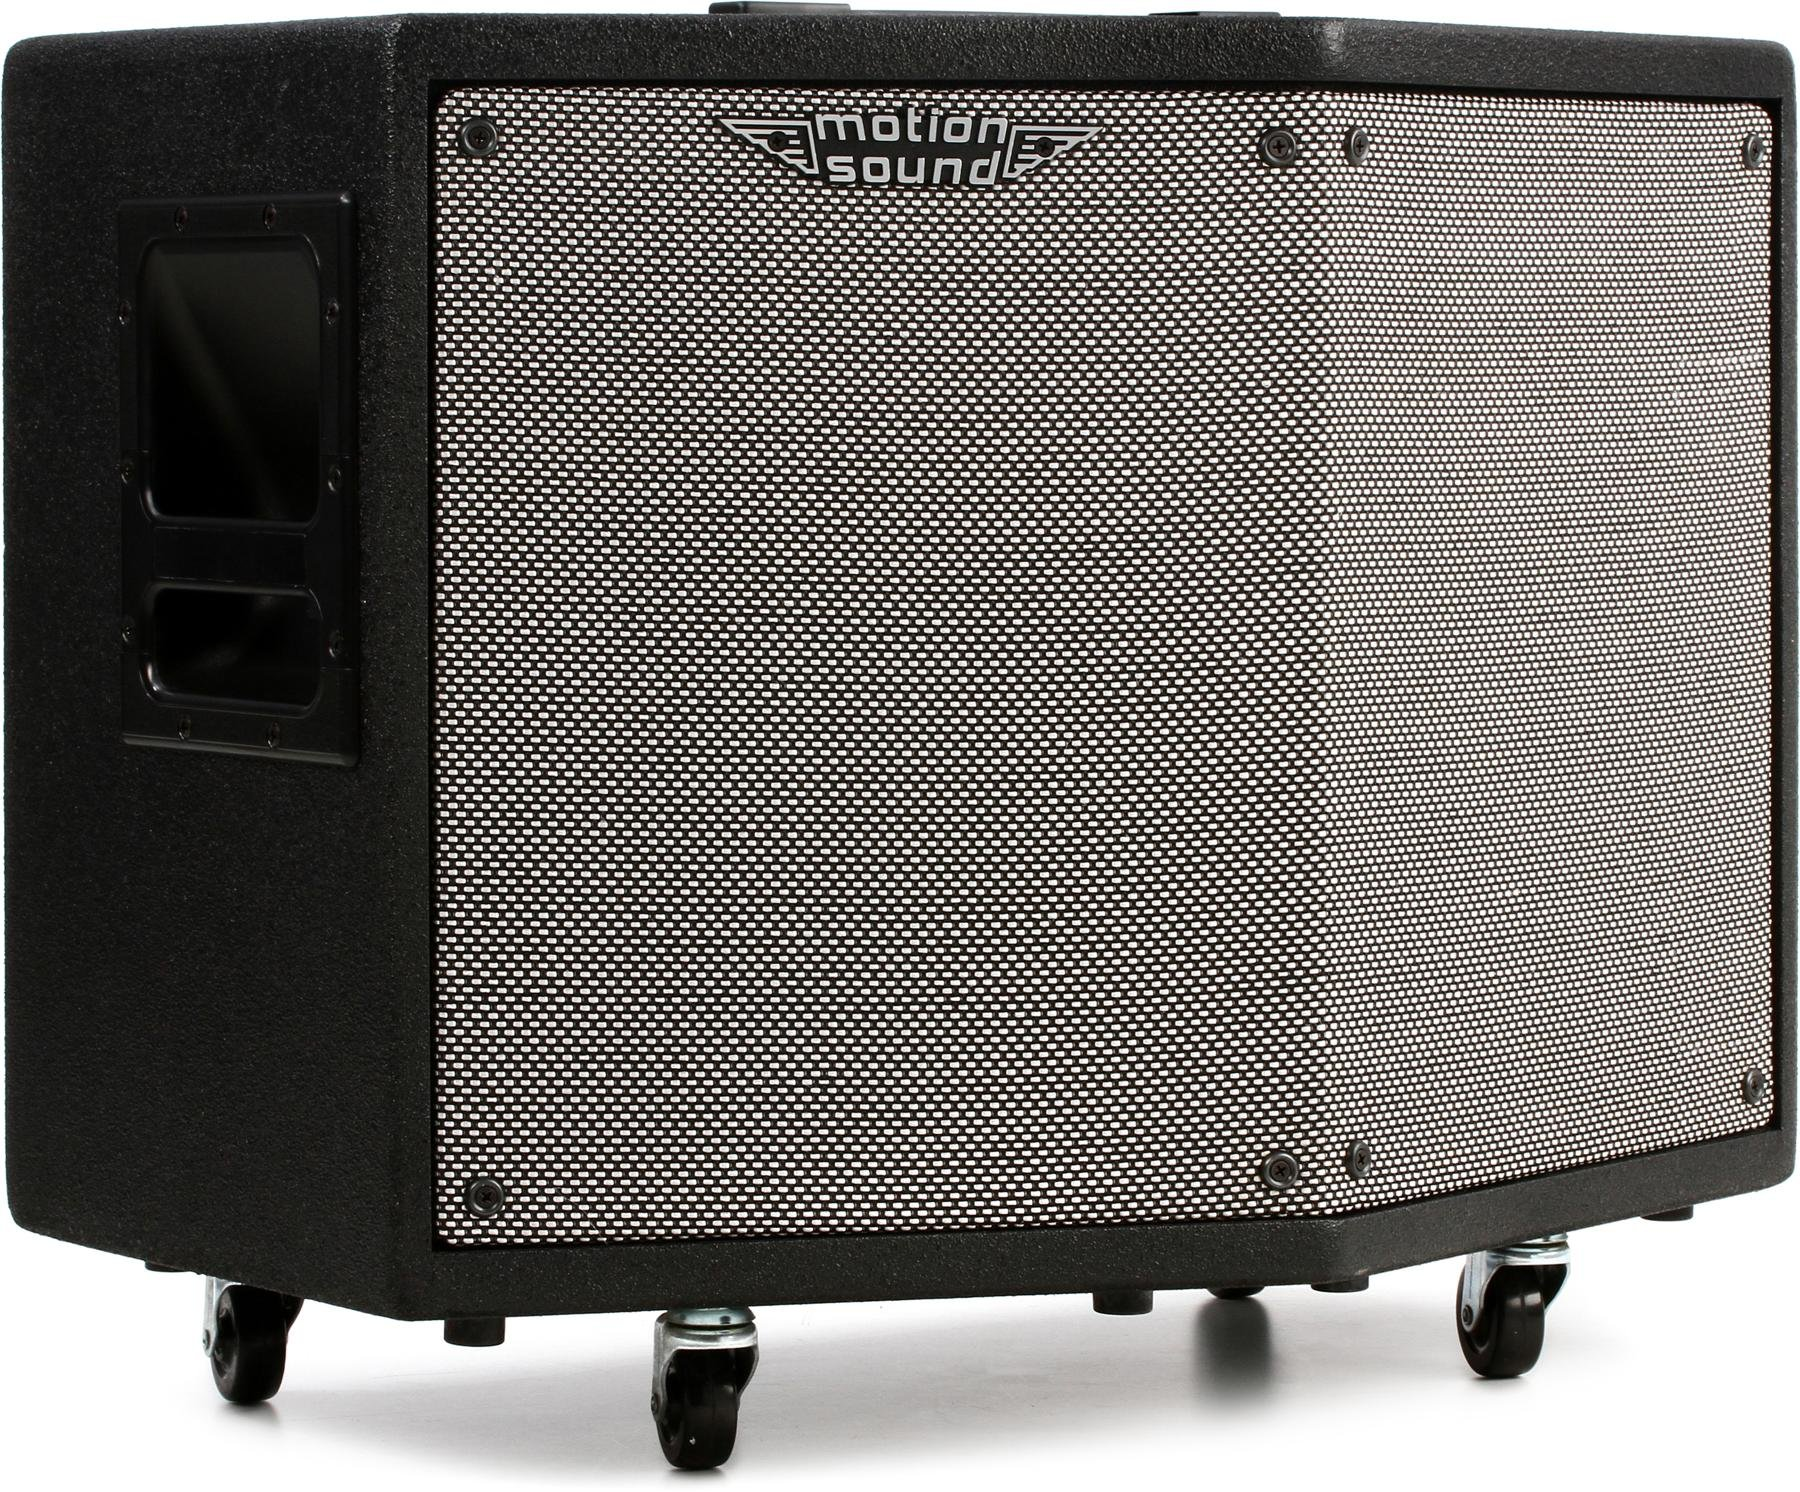 Motion Sound Sw 15 200w Subwoofer Sweetwater Guitar Or Music Amplifier Home Stereo Powered Kp 500s 500w 2x12 Keyboard Amp